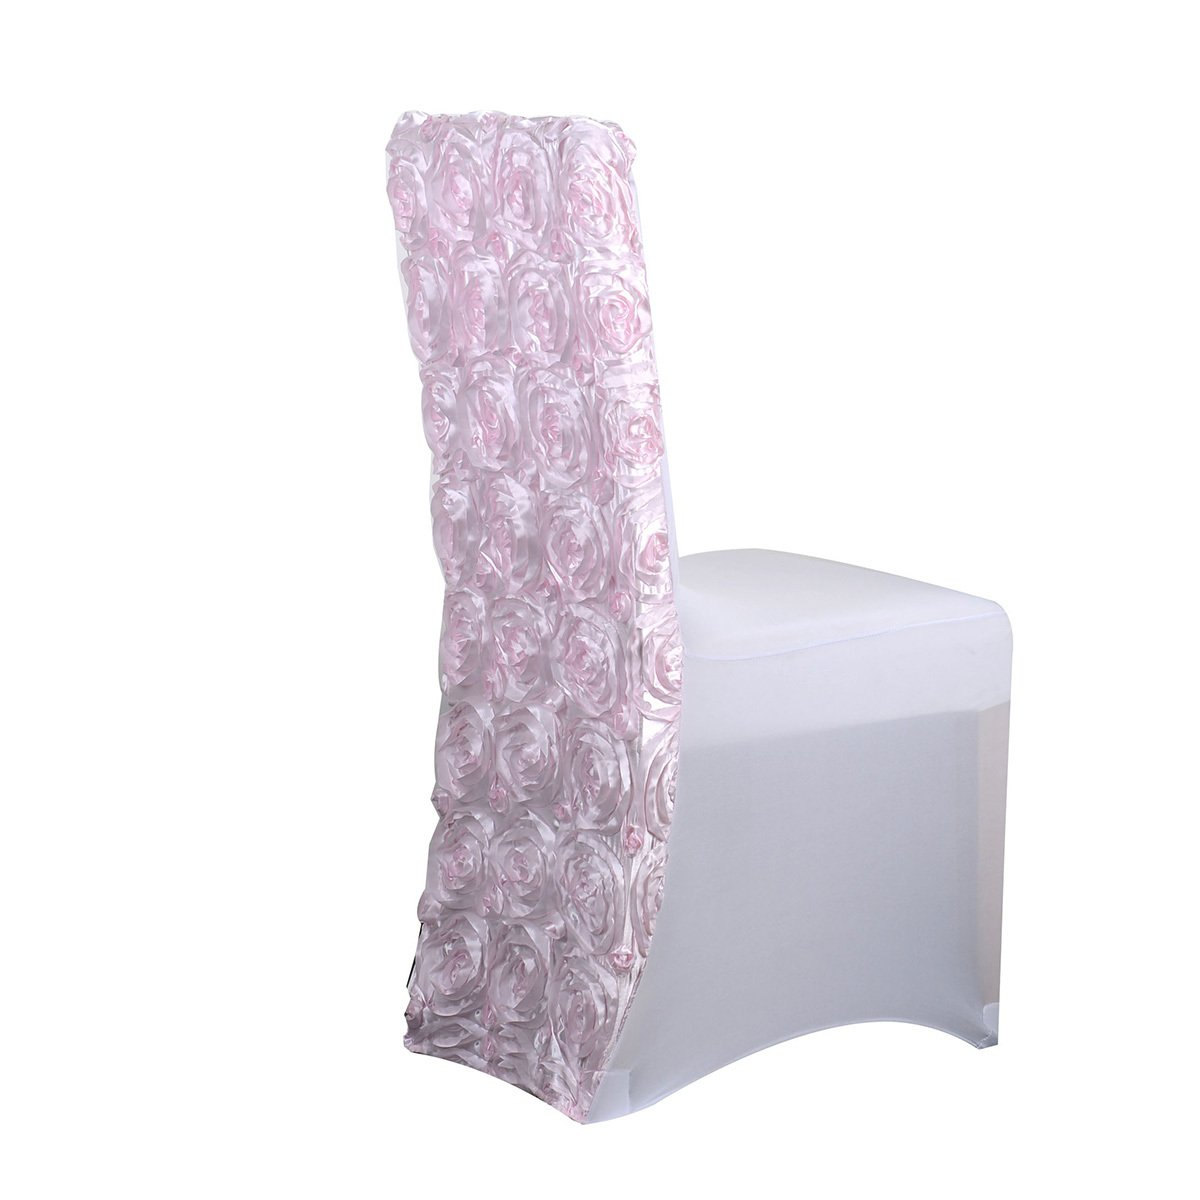 Fuzzy Fabric Rosette Spandex Chair Cover – Light Pink